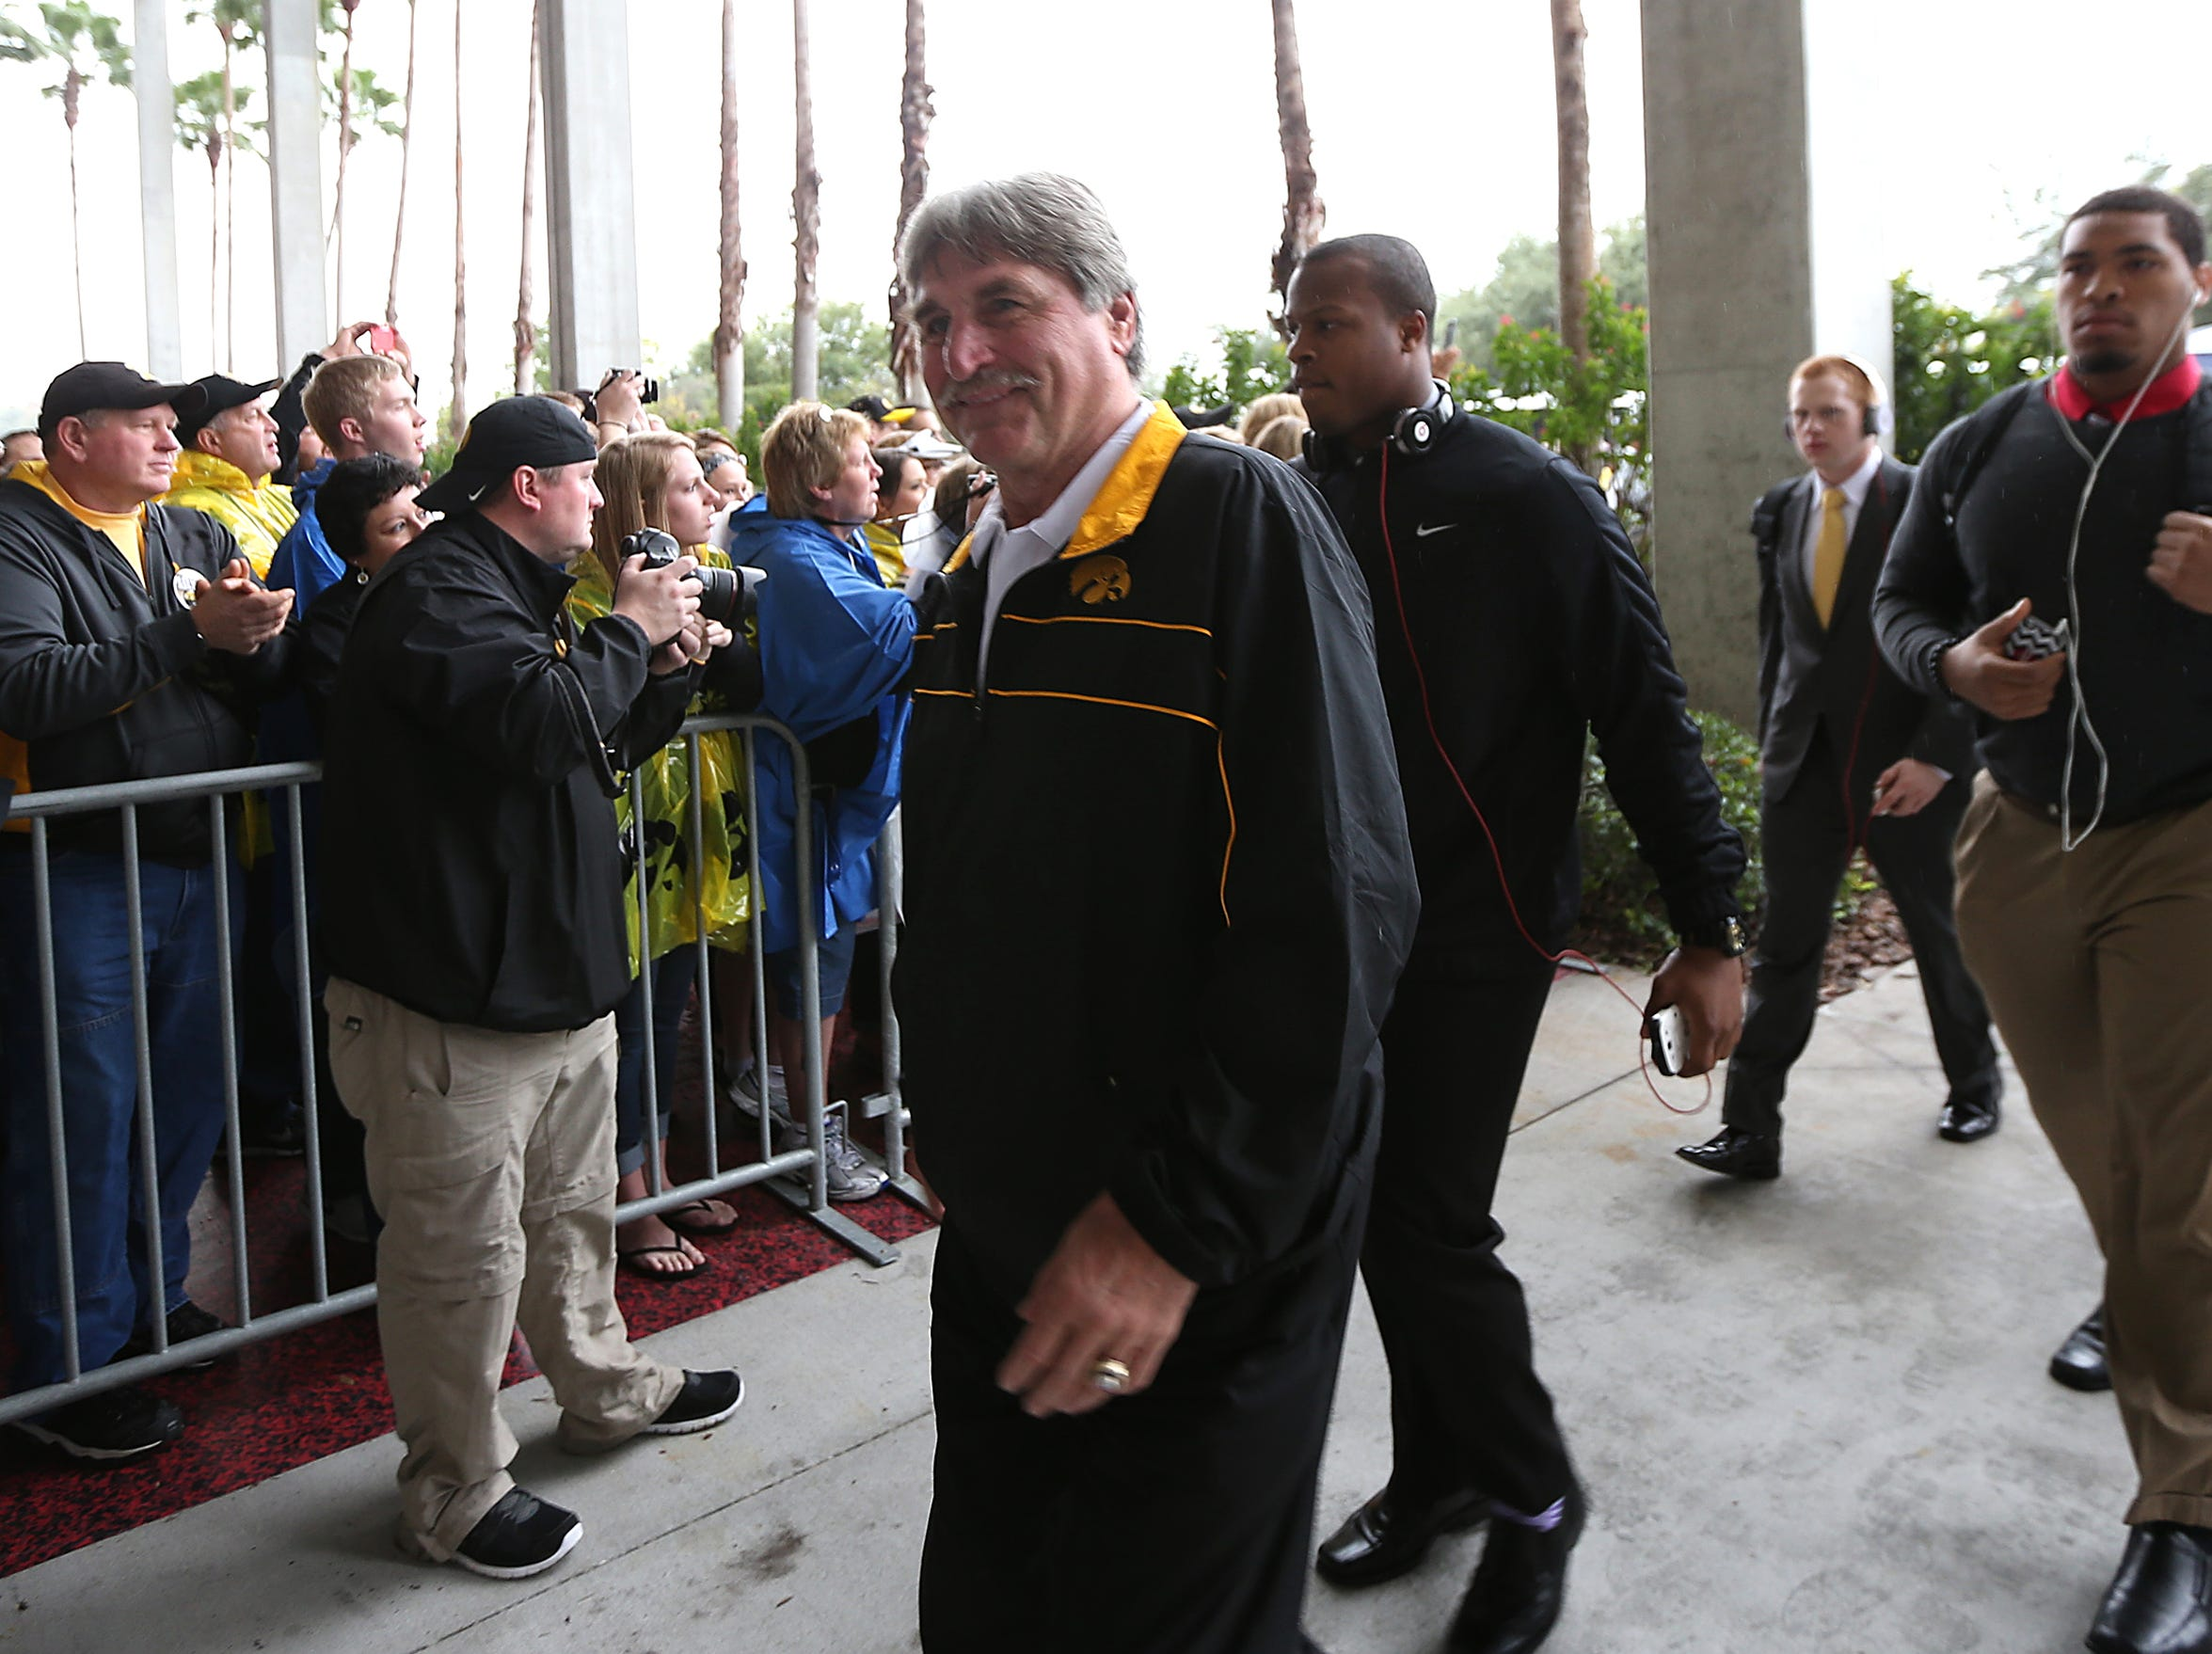 Iowa radio personality and former Hawkeye Ed Podolak makes the walk up to Raymond James Stadium on Wednesday, Jan. 1, 2014, in Tampa, Florida. (Bryon Houlgrave/The Register)